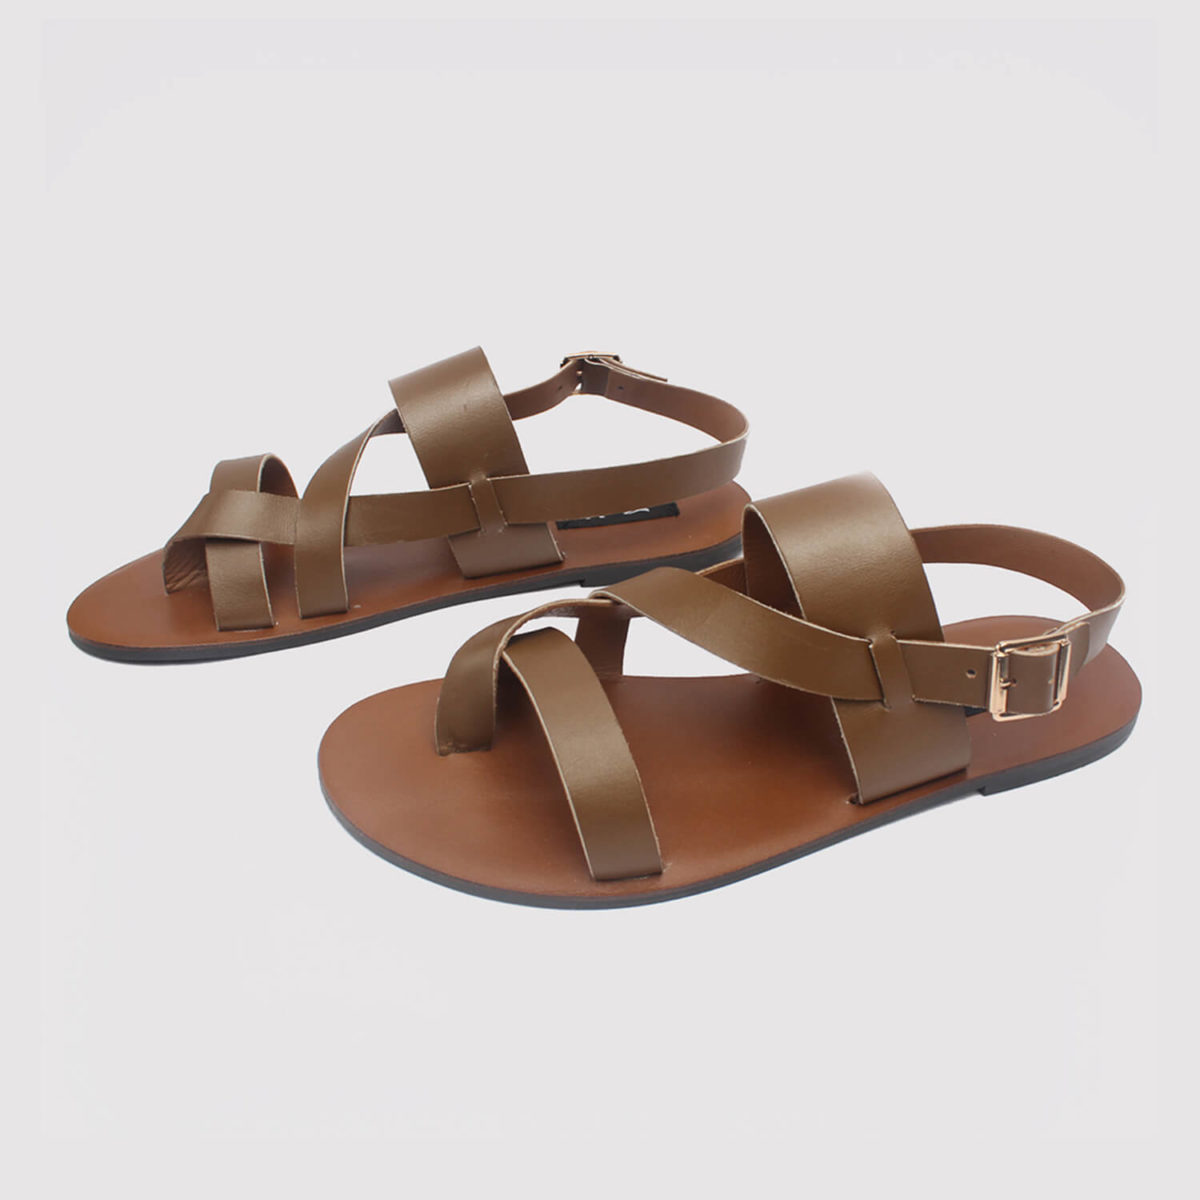 kuti sandals brown leather by zorkle shoes in lagos nigeria